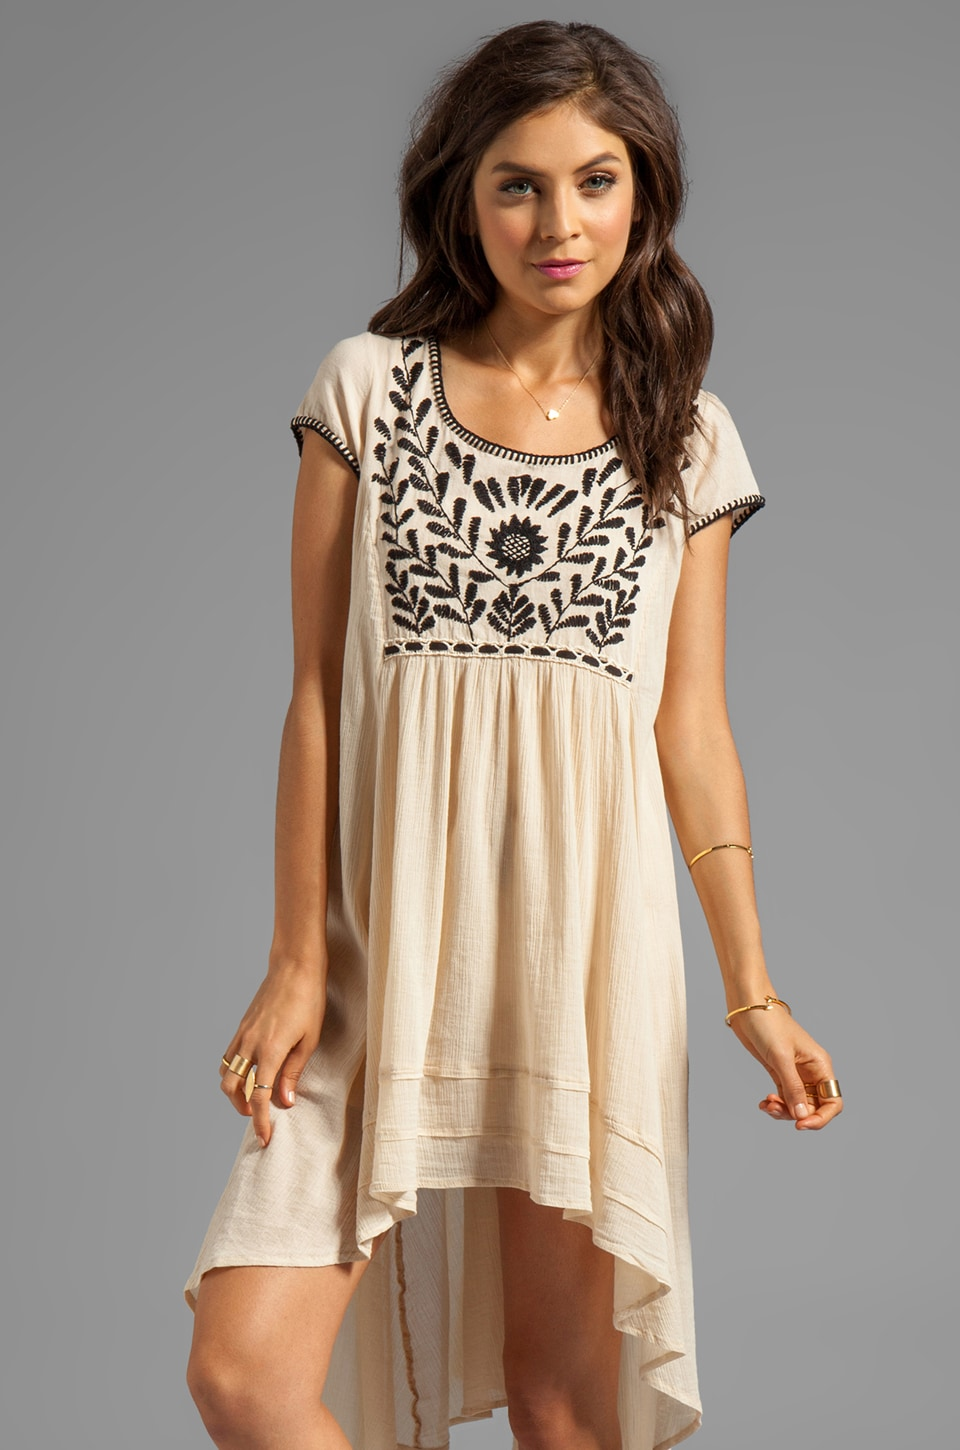 Free People Marina Embroidered Dress in Ivory